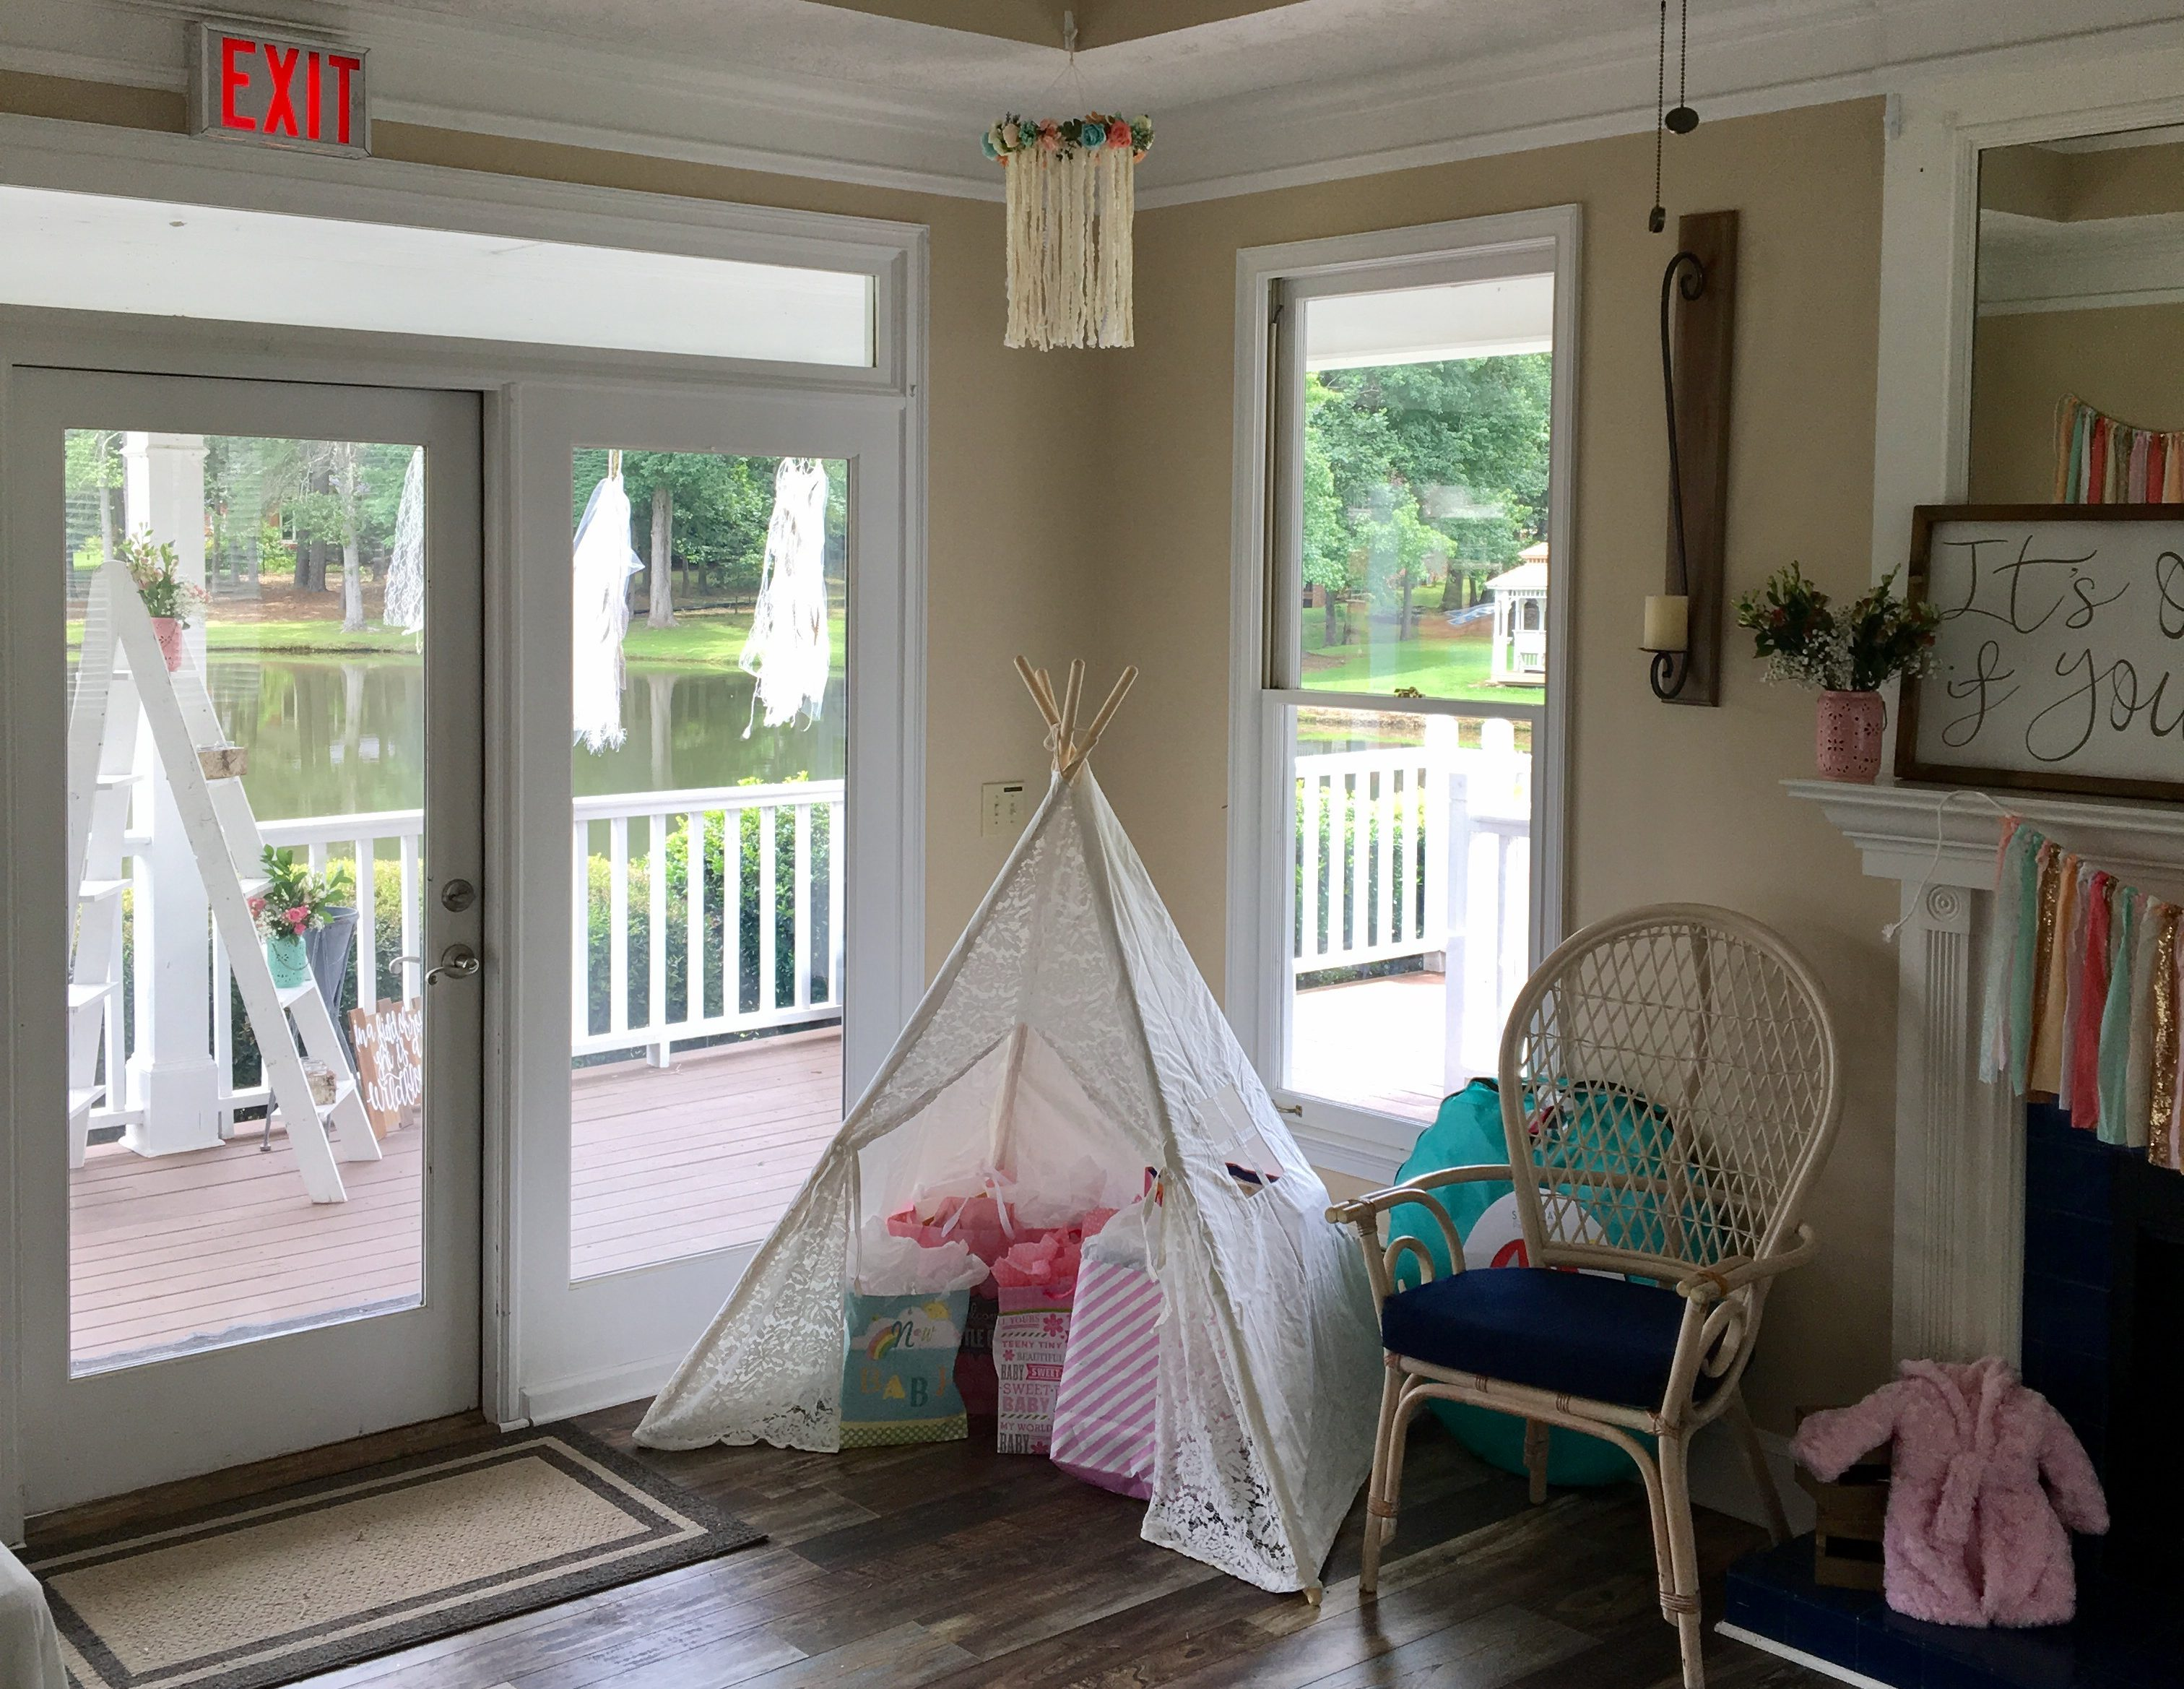 I Hope These Tips Will Help You Have A Beautifully Decorated Baby Shower  AND Nursery 🙂